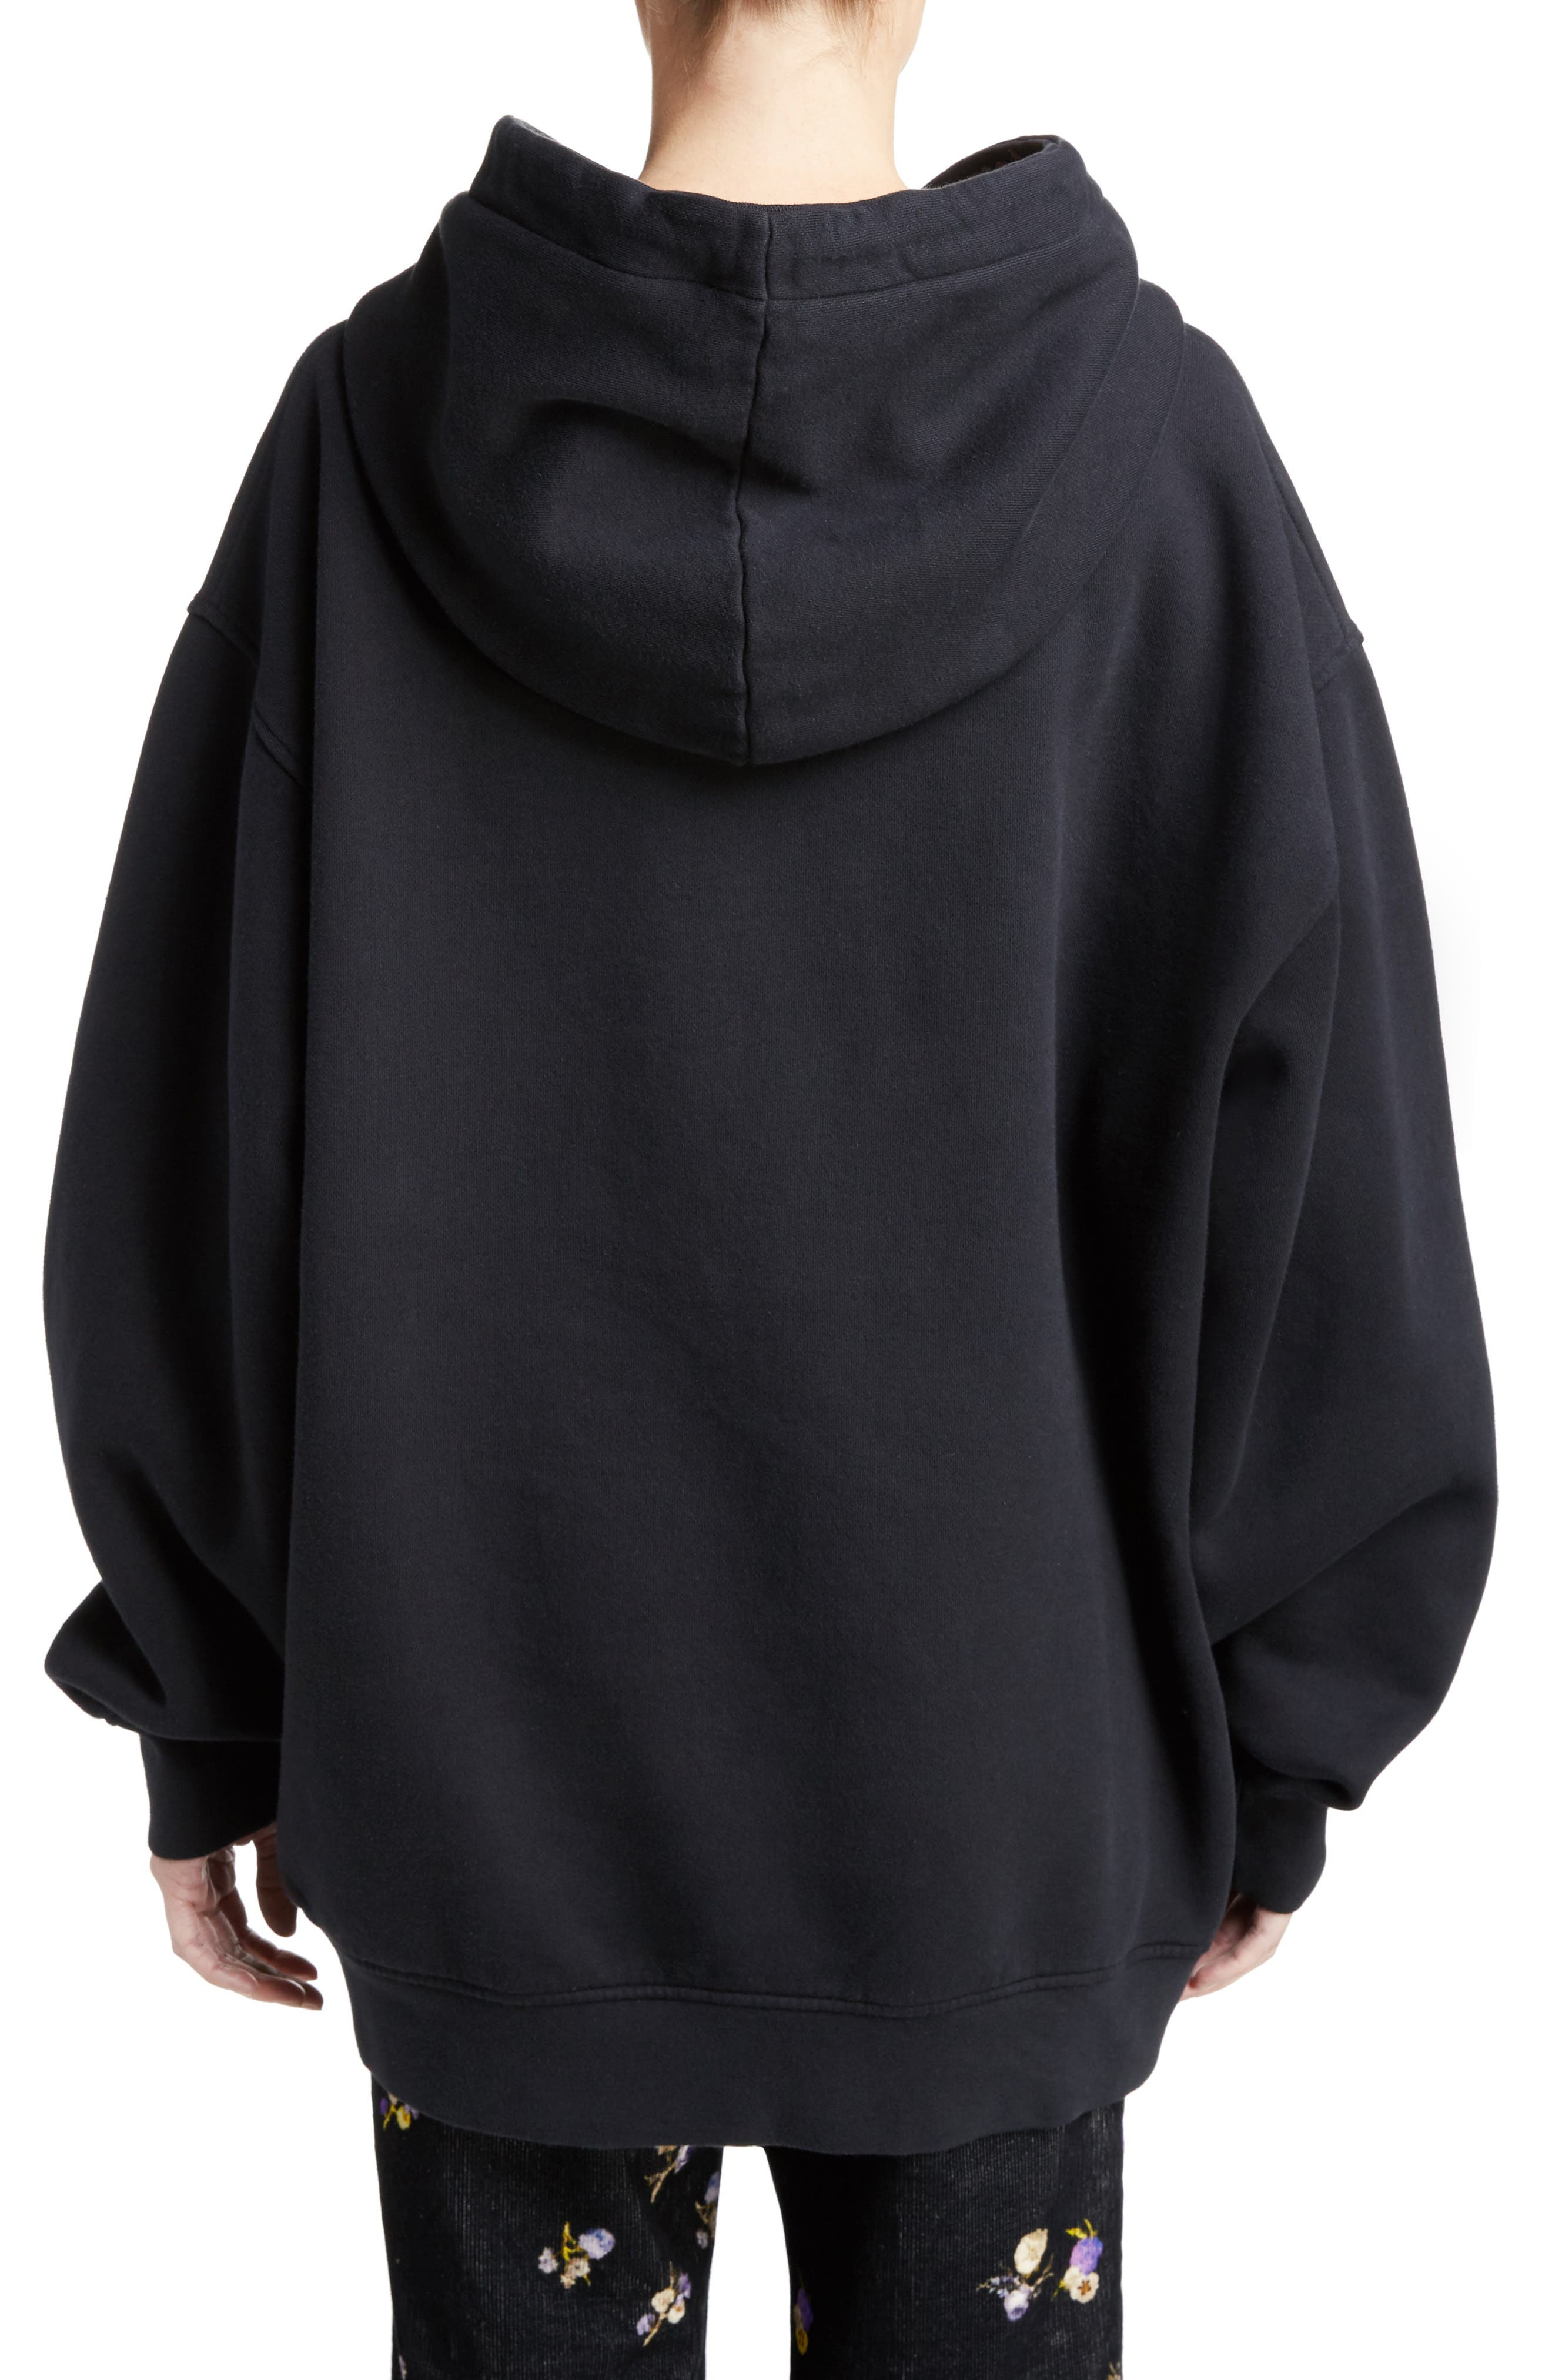 ACNE STUDIOS,                             Yala Oversize Hoodie,                             Alternate thumbnail 2, color,                             001